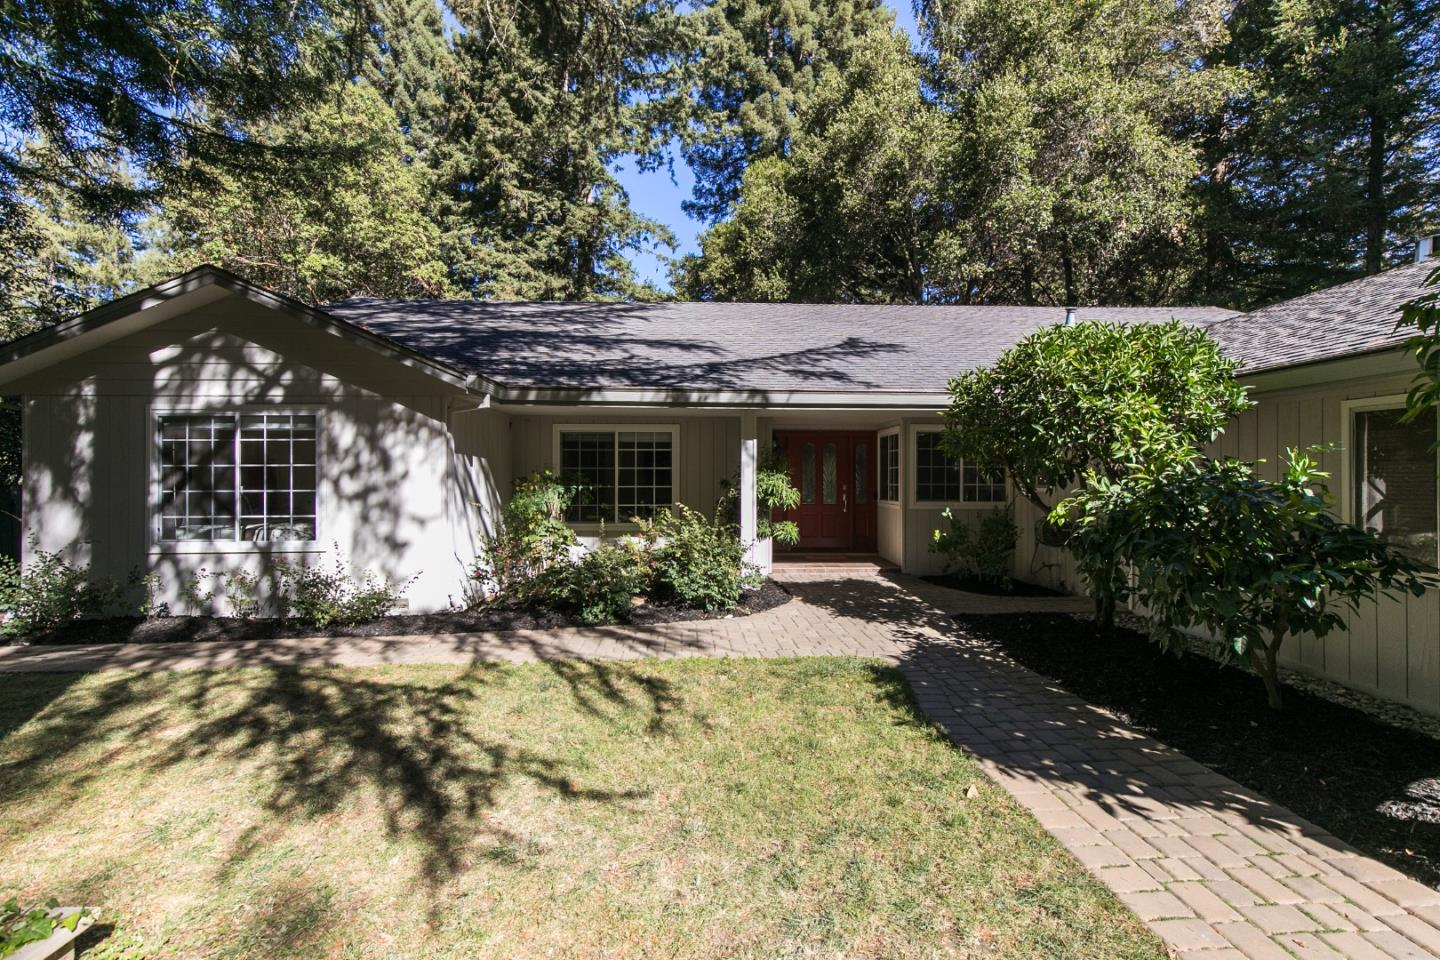 Come home to a majestic, tranquil & private paradise. On the market for the first time in 43 years, this single-level gem is a turnkey abode just waiting for you to make it your home. This location benefits from Scotts Valley City water & Comcast Cable internet! Imagine the lifestyle you can live when ideally situated 20 minutes from the beaches of Santa Cruz and with all the conveniences of Silicon Valley and Scotts Valley just a short jaunt away. Glenwood Acres is a majestic neighborhood, a tightknit community and a great place to walk among the redwoods. Not far from state parks, beaches and all the fun of Santa Cruz County, this location is likely what you have been dreaming of. Much love has been shared in this special family home over the years. Your family could be the next to enjoy this magical setting and to carry the torch of impeccable pride of ownership. Special homes like this one do not last. So see it before it's gone! Check out the virtual walk through tour!